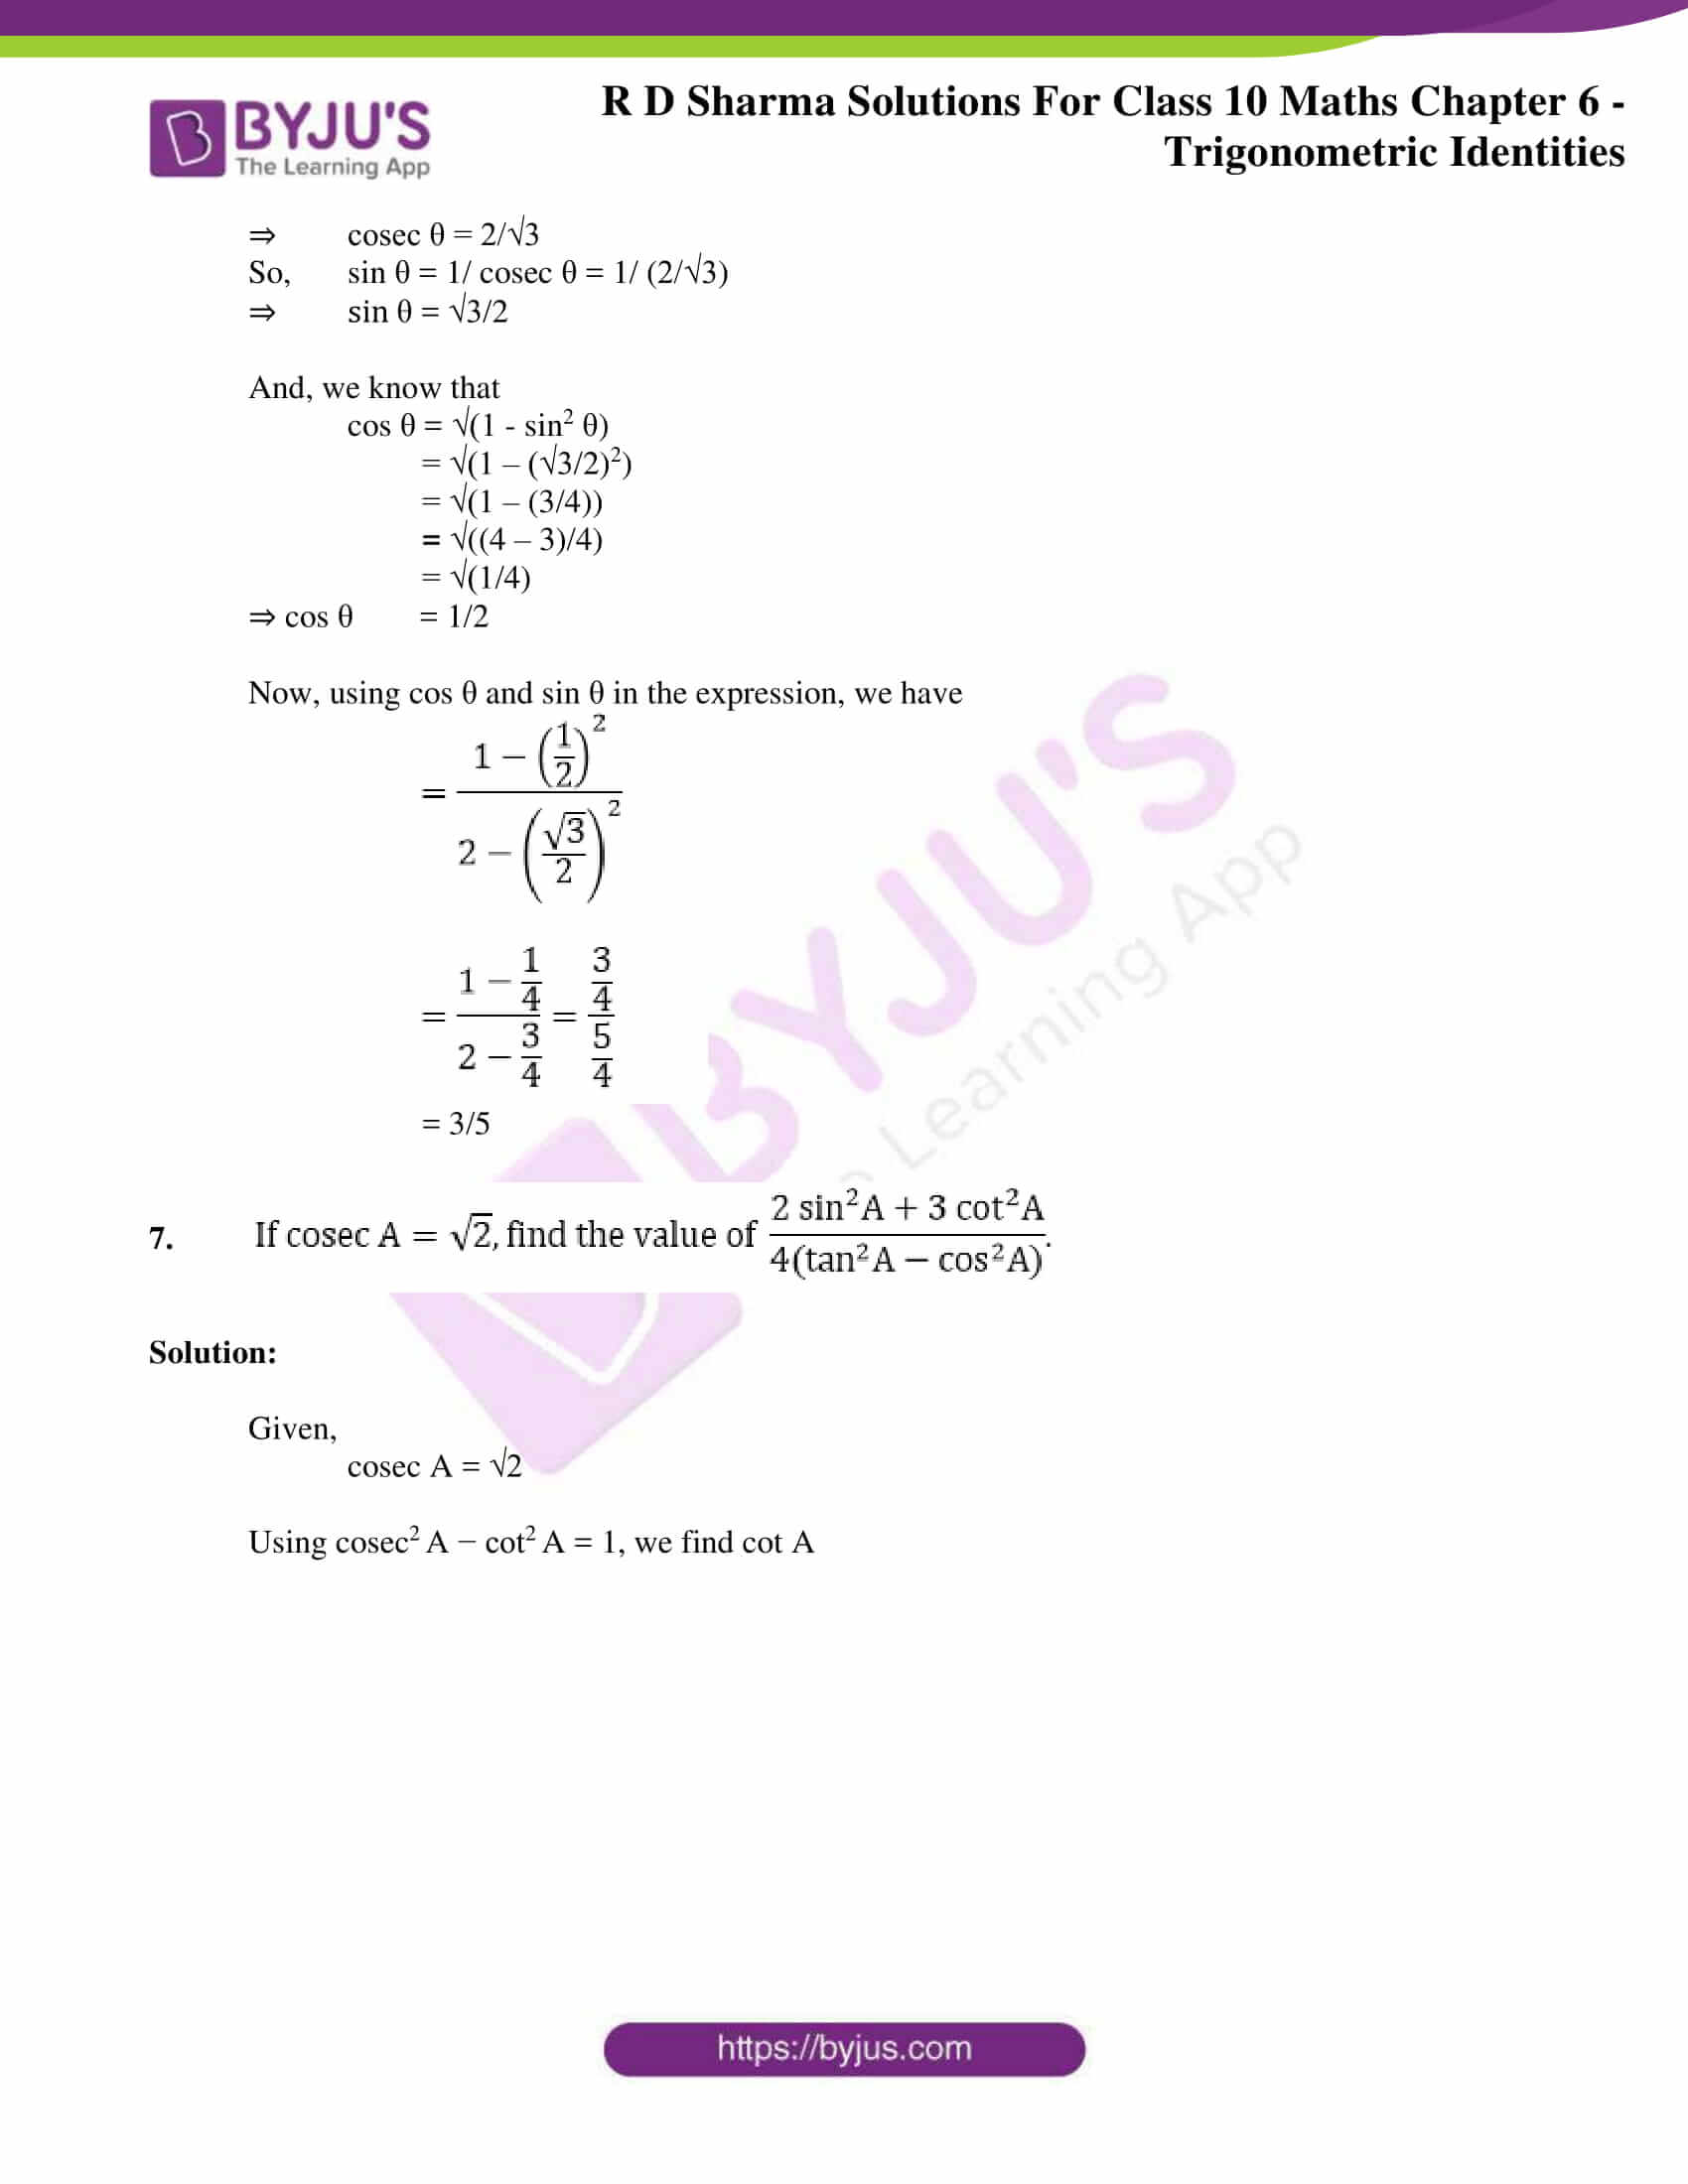 RD Sharma Solutions for Class 10 Chapter 6 Trigonometric Identities 34